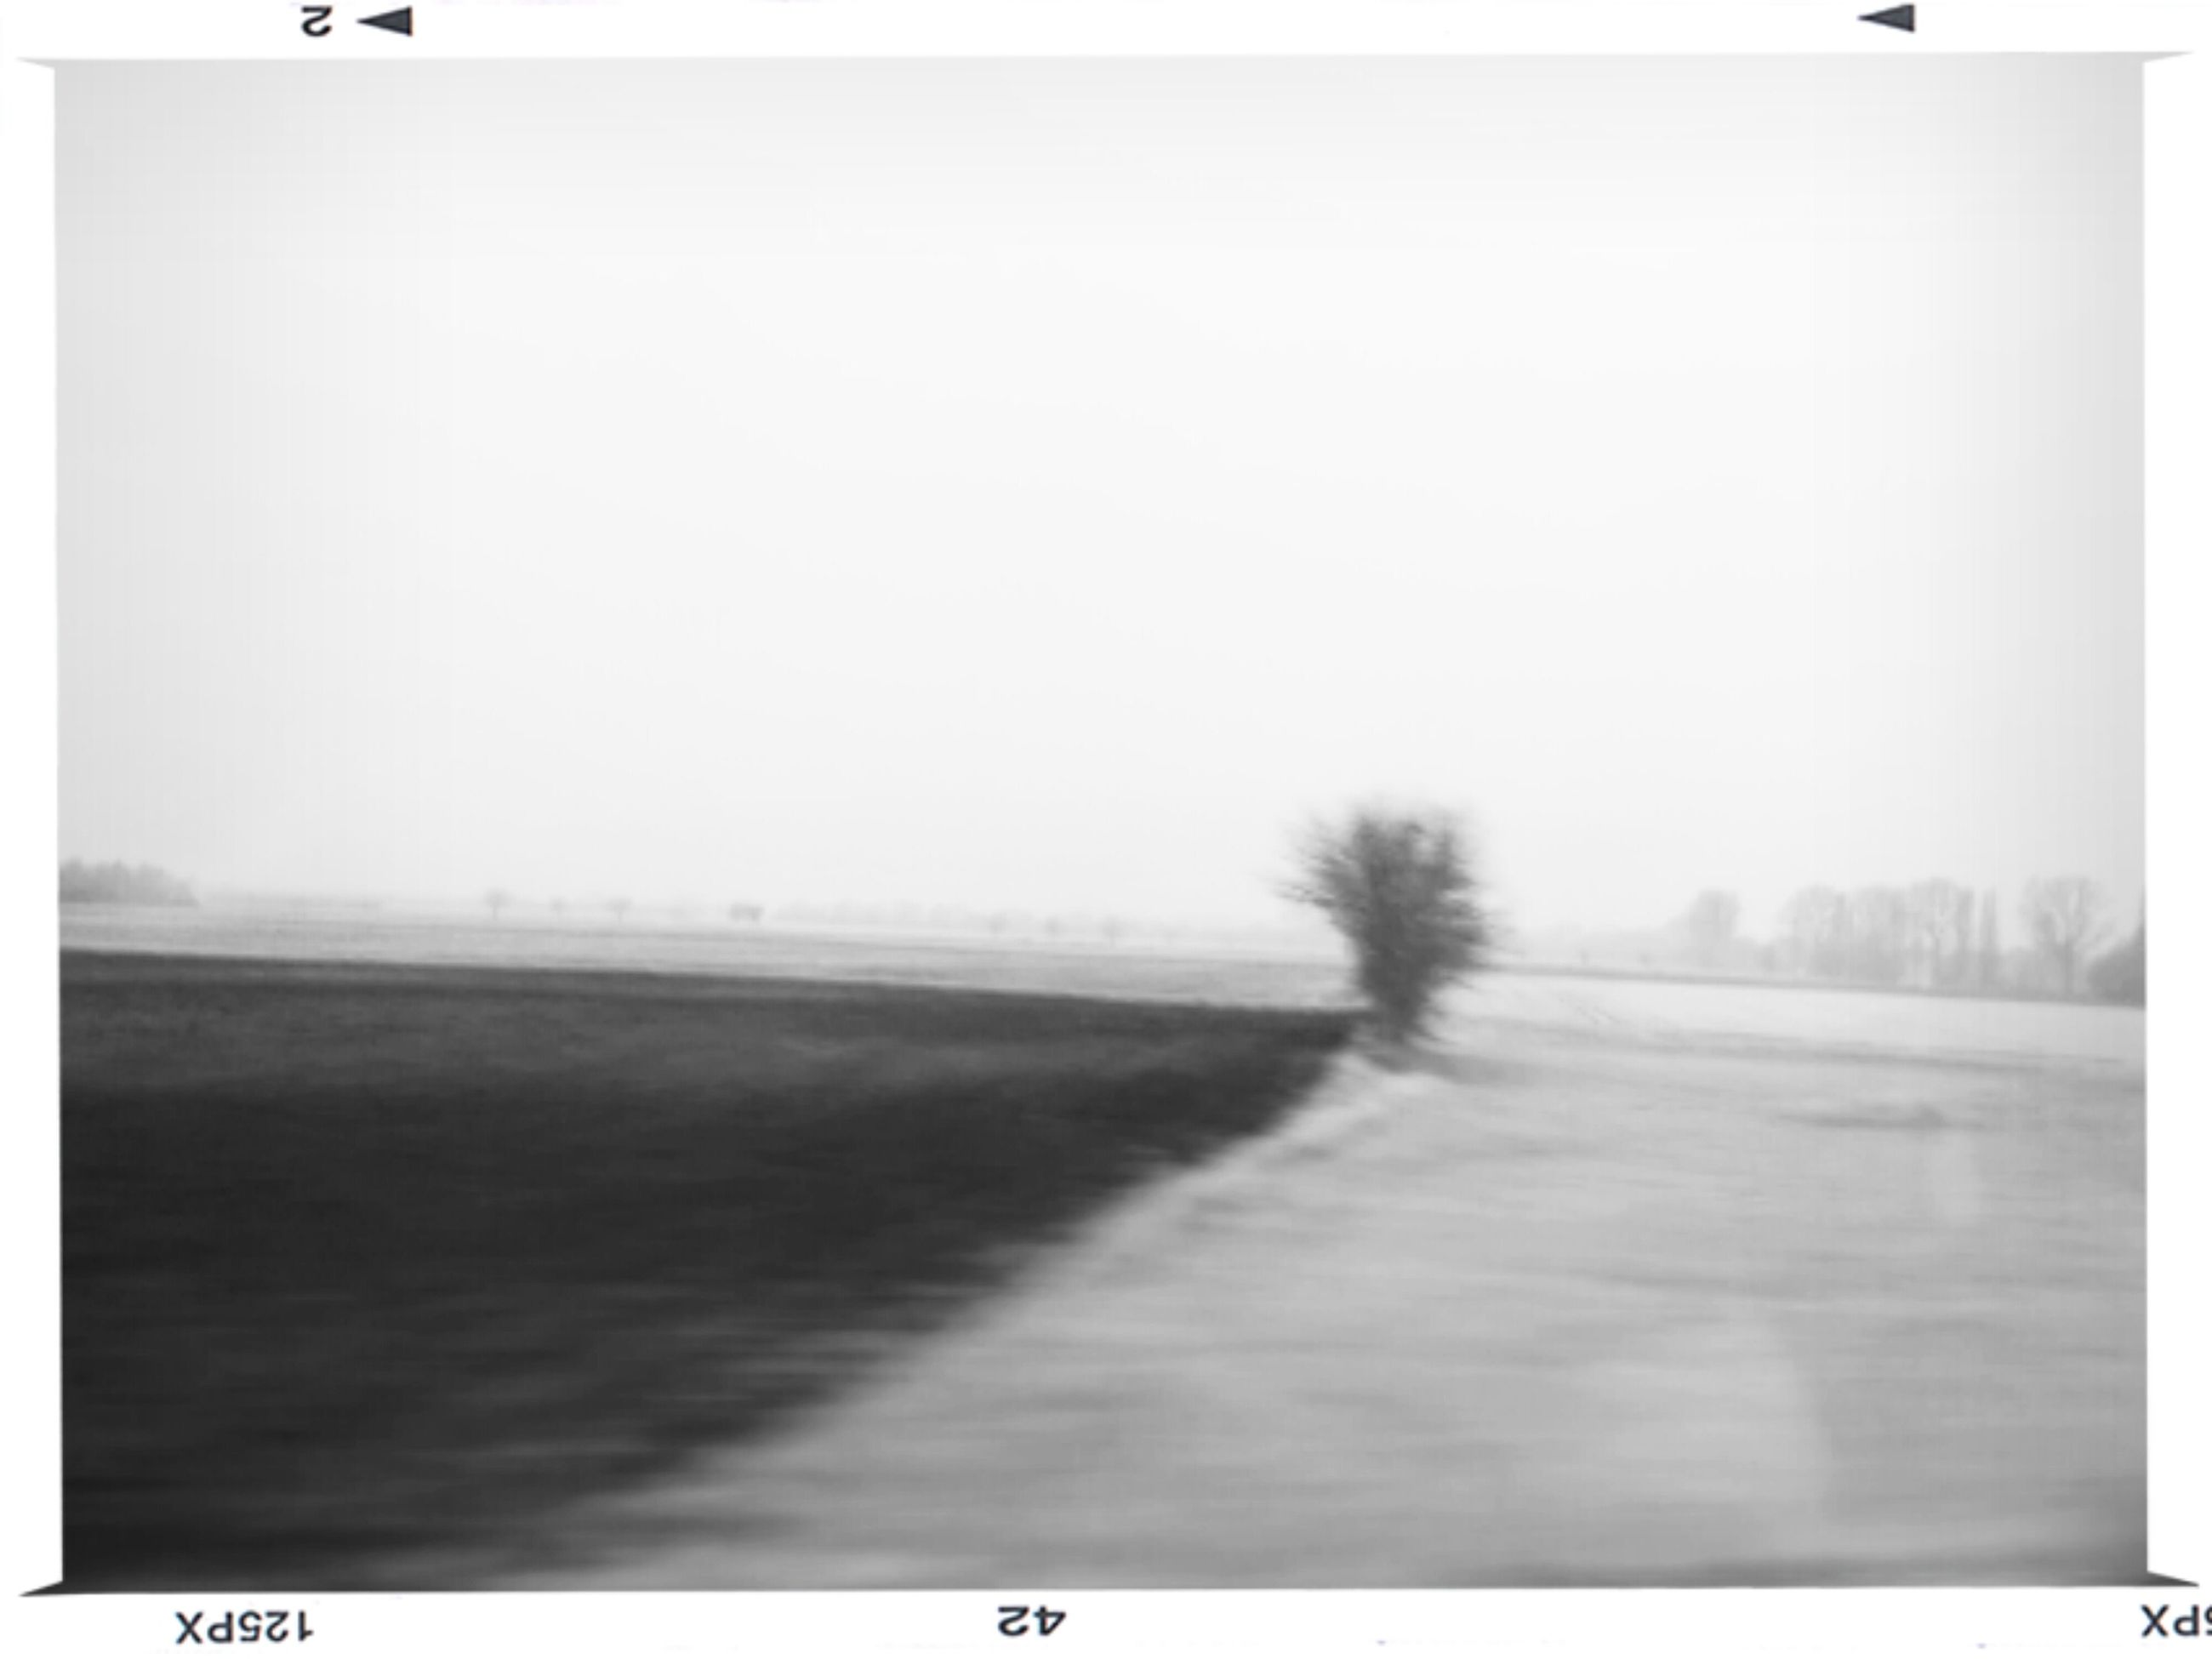 copy space, transfer print, clear sky, the way forward, tranquility, tranquil scene, auto post production filter, foggy, nature, scenics, landscape, road, weather, field, empty, beauty in nature, diminishing perspective, solitude, outdoors